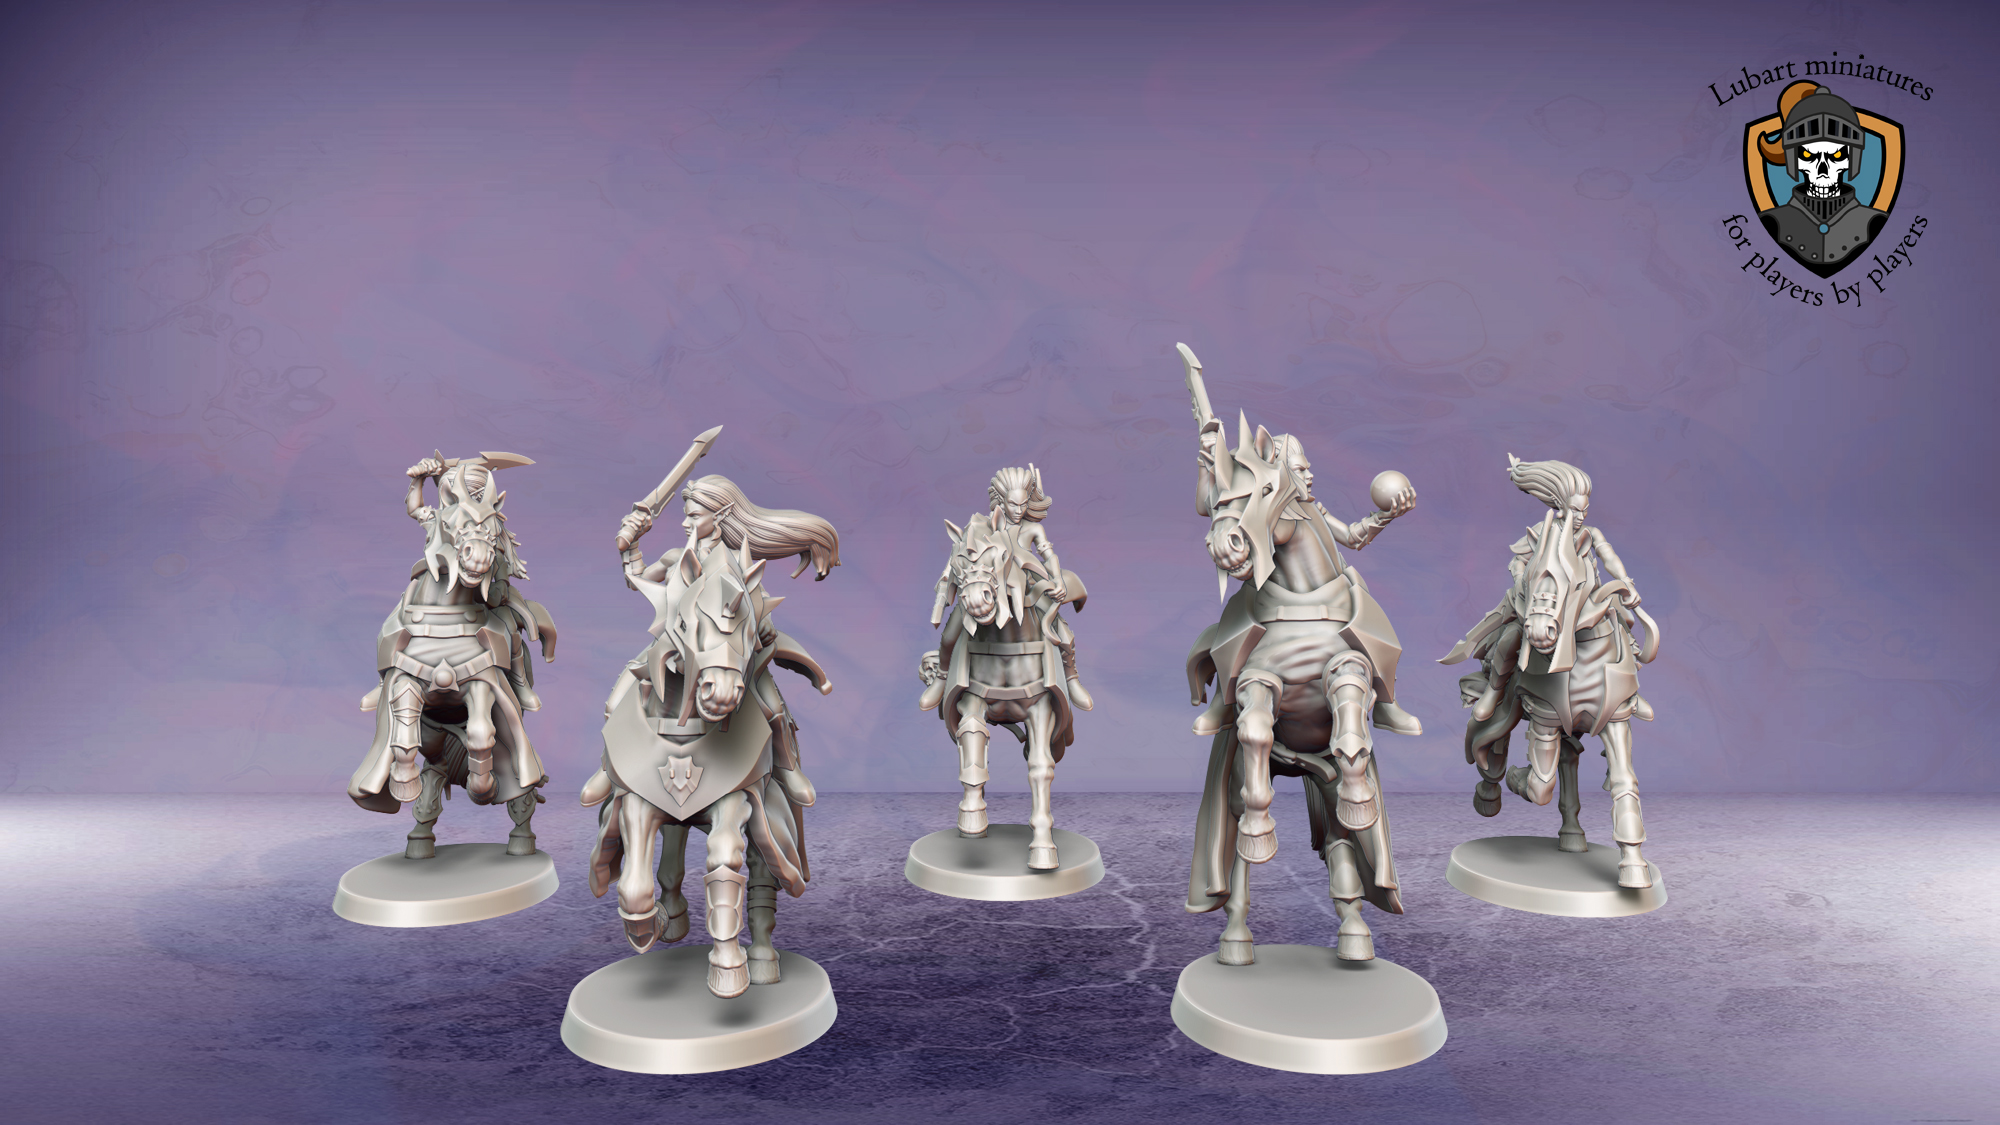 Warlock Acolytes. Miniatures for the Dread Elves army.